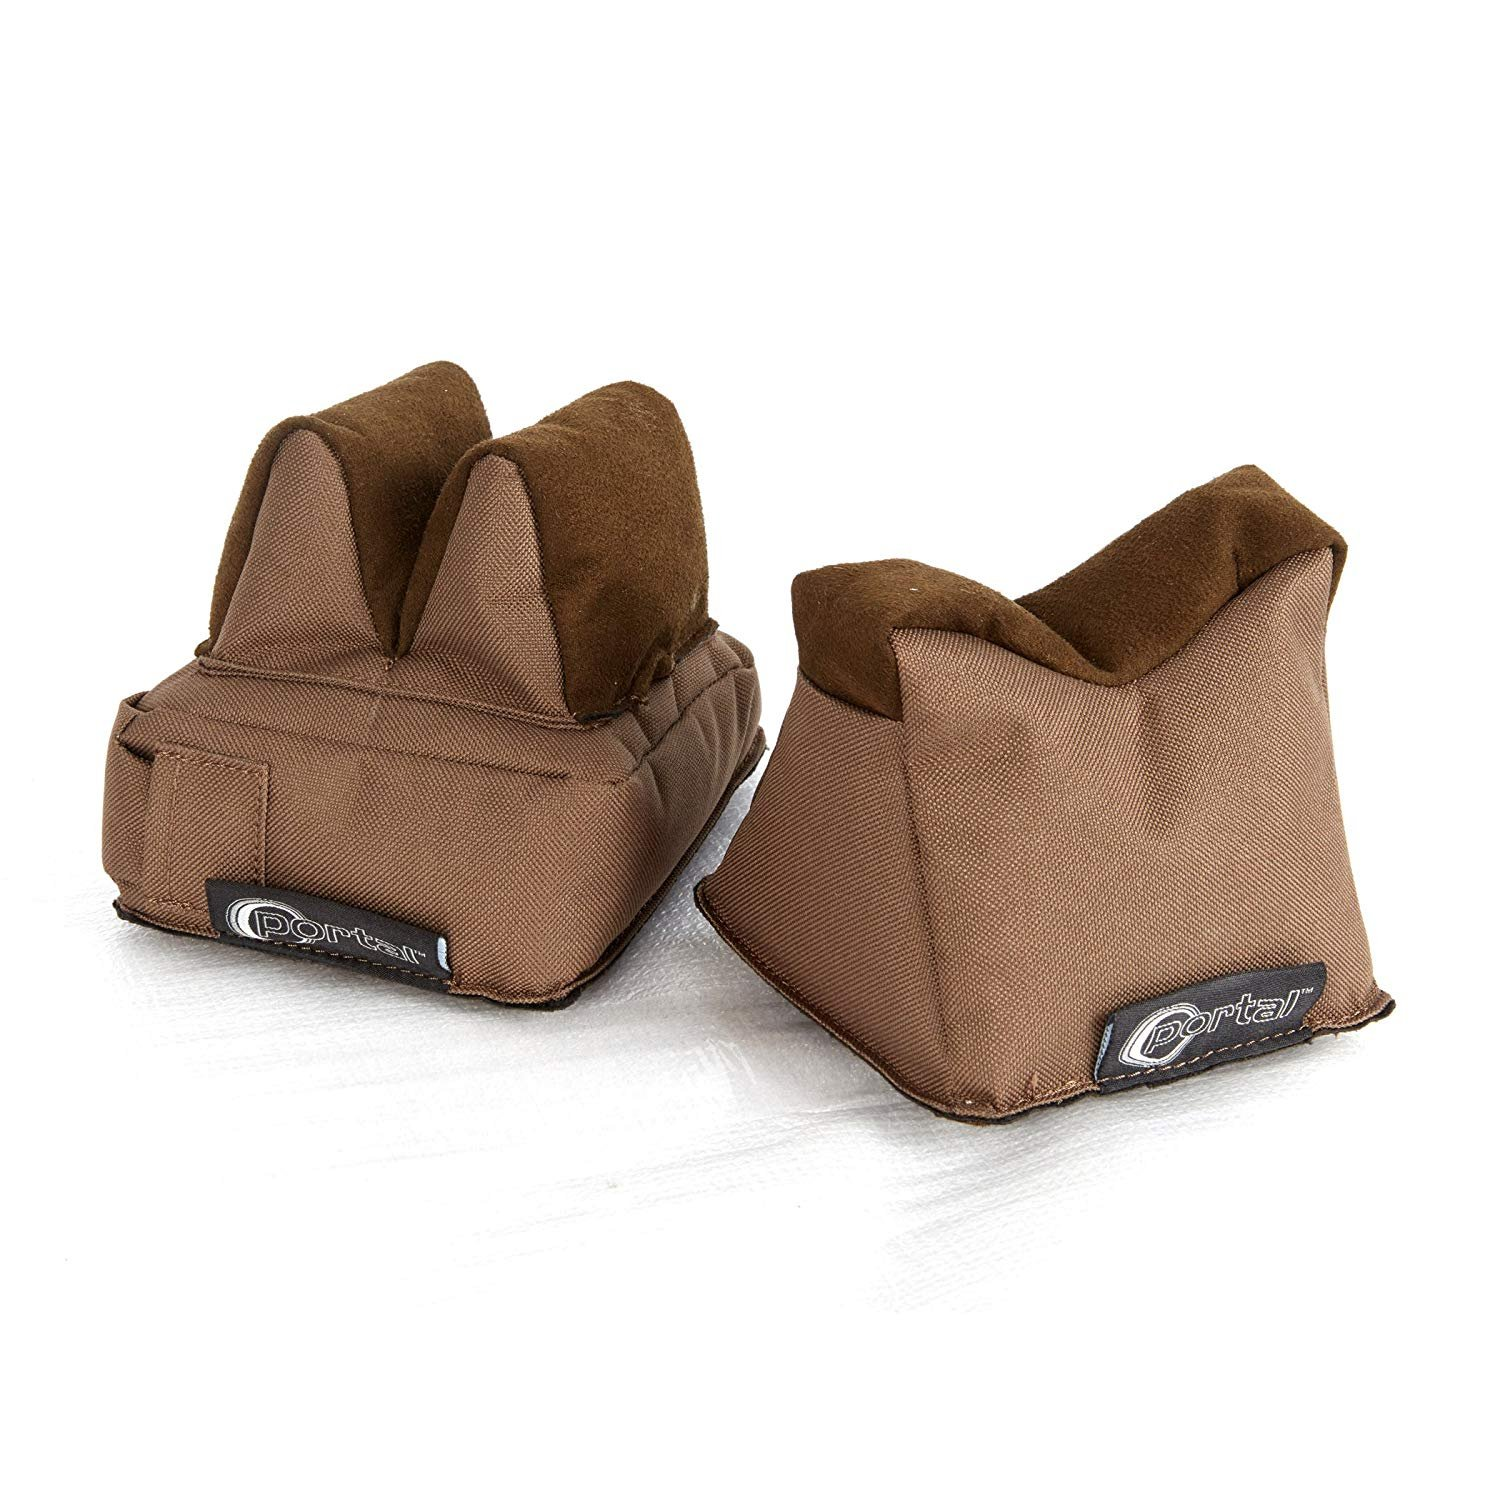 PORTAL Shooting Rest Bag-Rifle Gun Target Pre-Filled Front & Rear Bags for Hunting Shooter, Brown